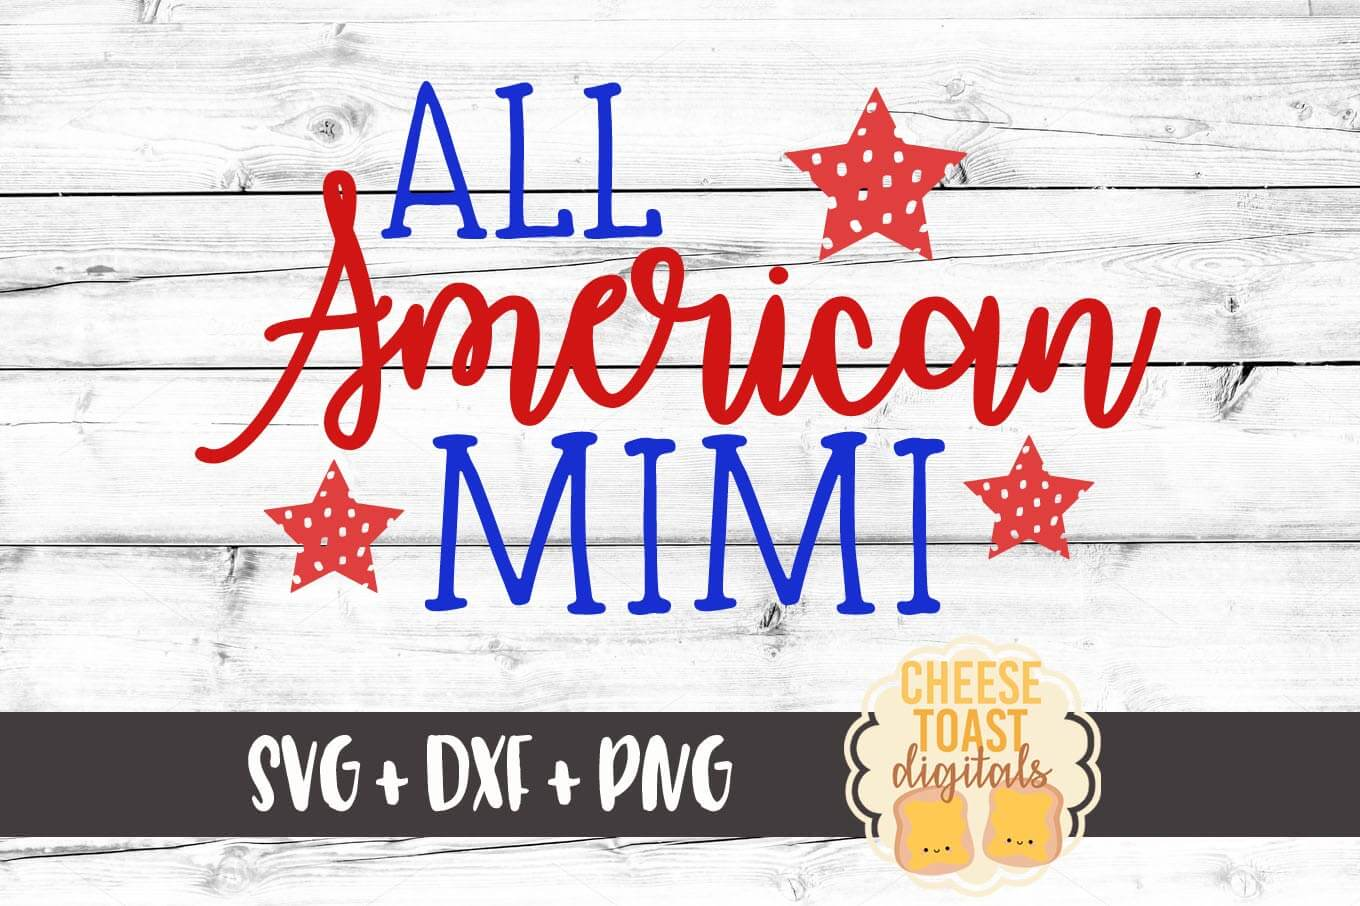 All American Mimi - SVG, PNG, DXF